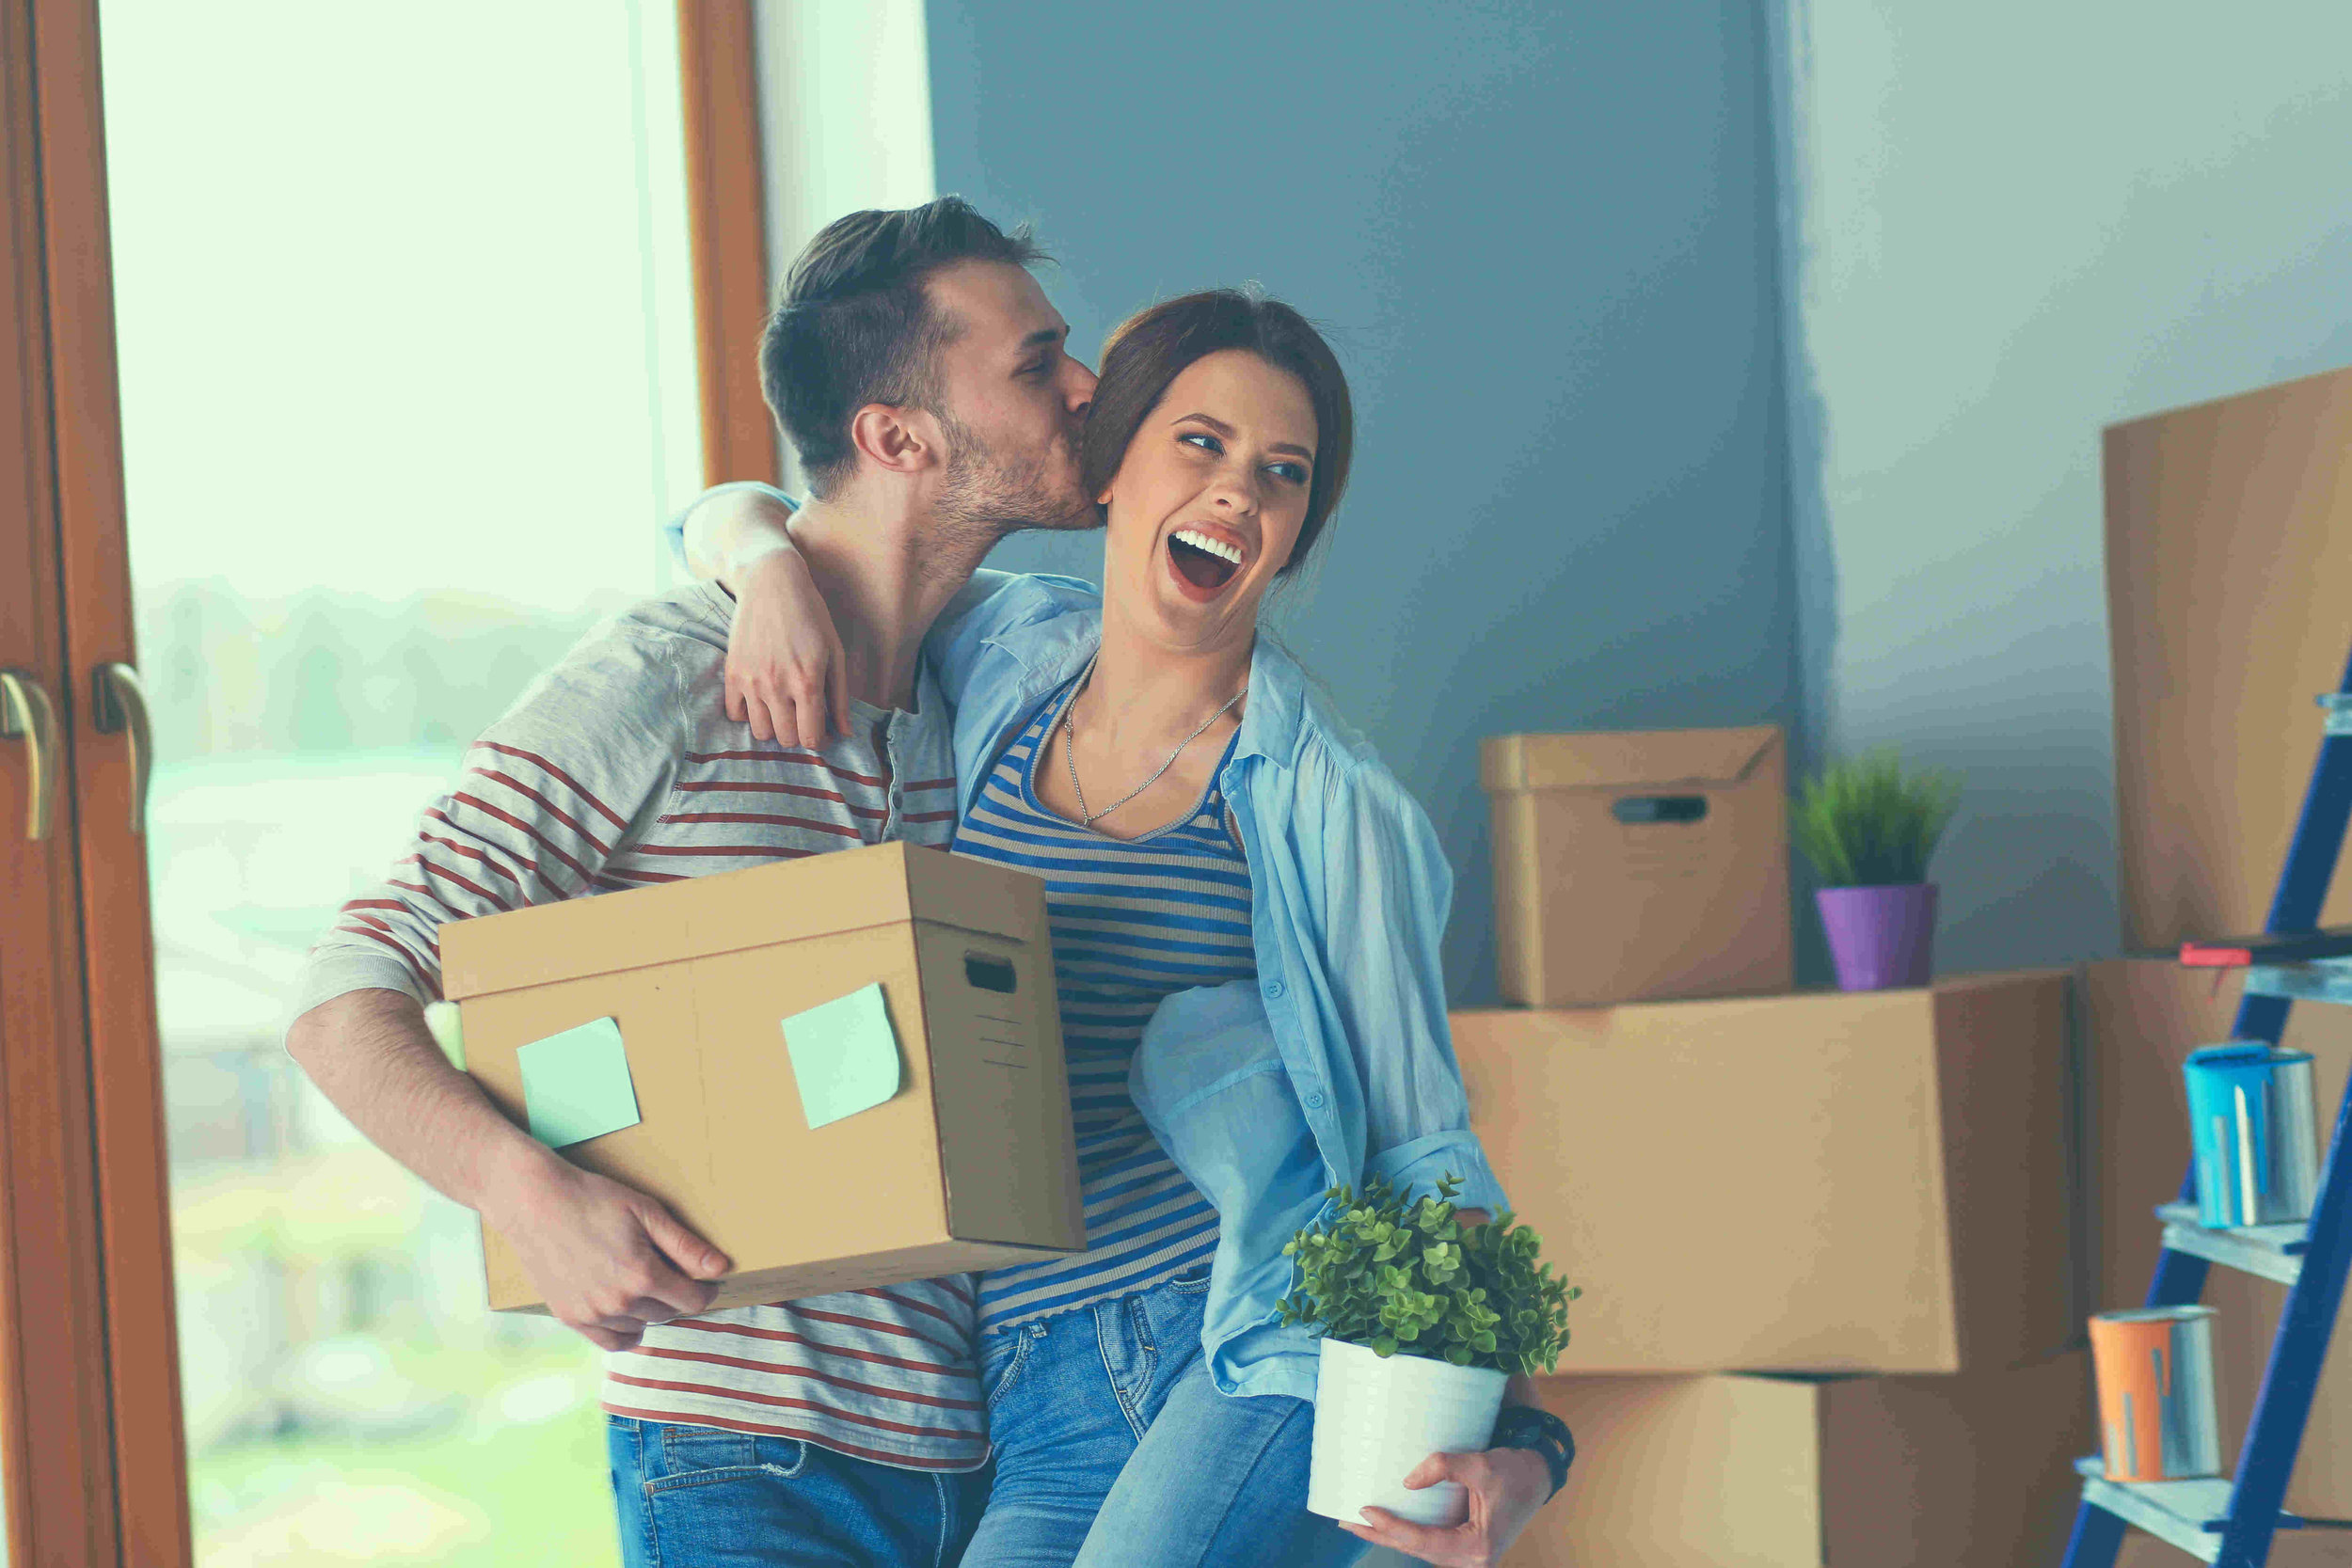 man kisses woman as they move into new home